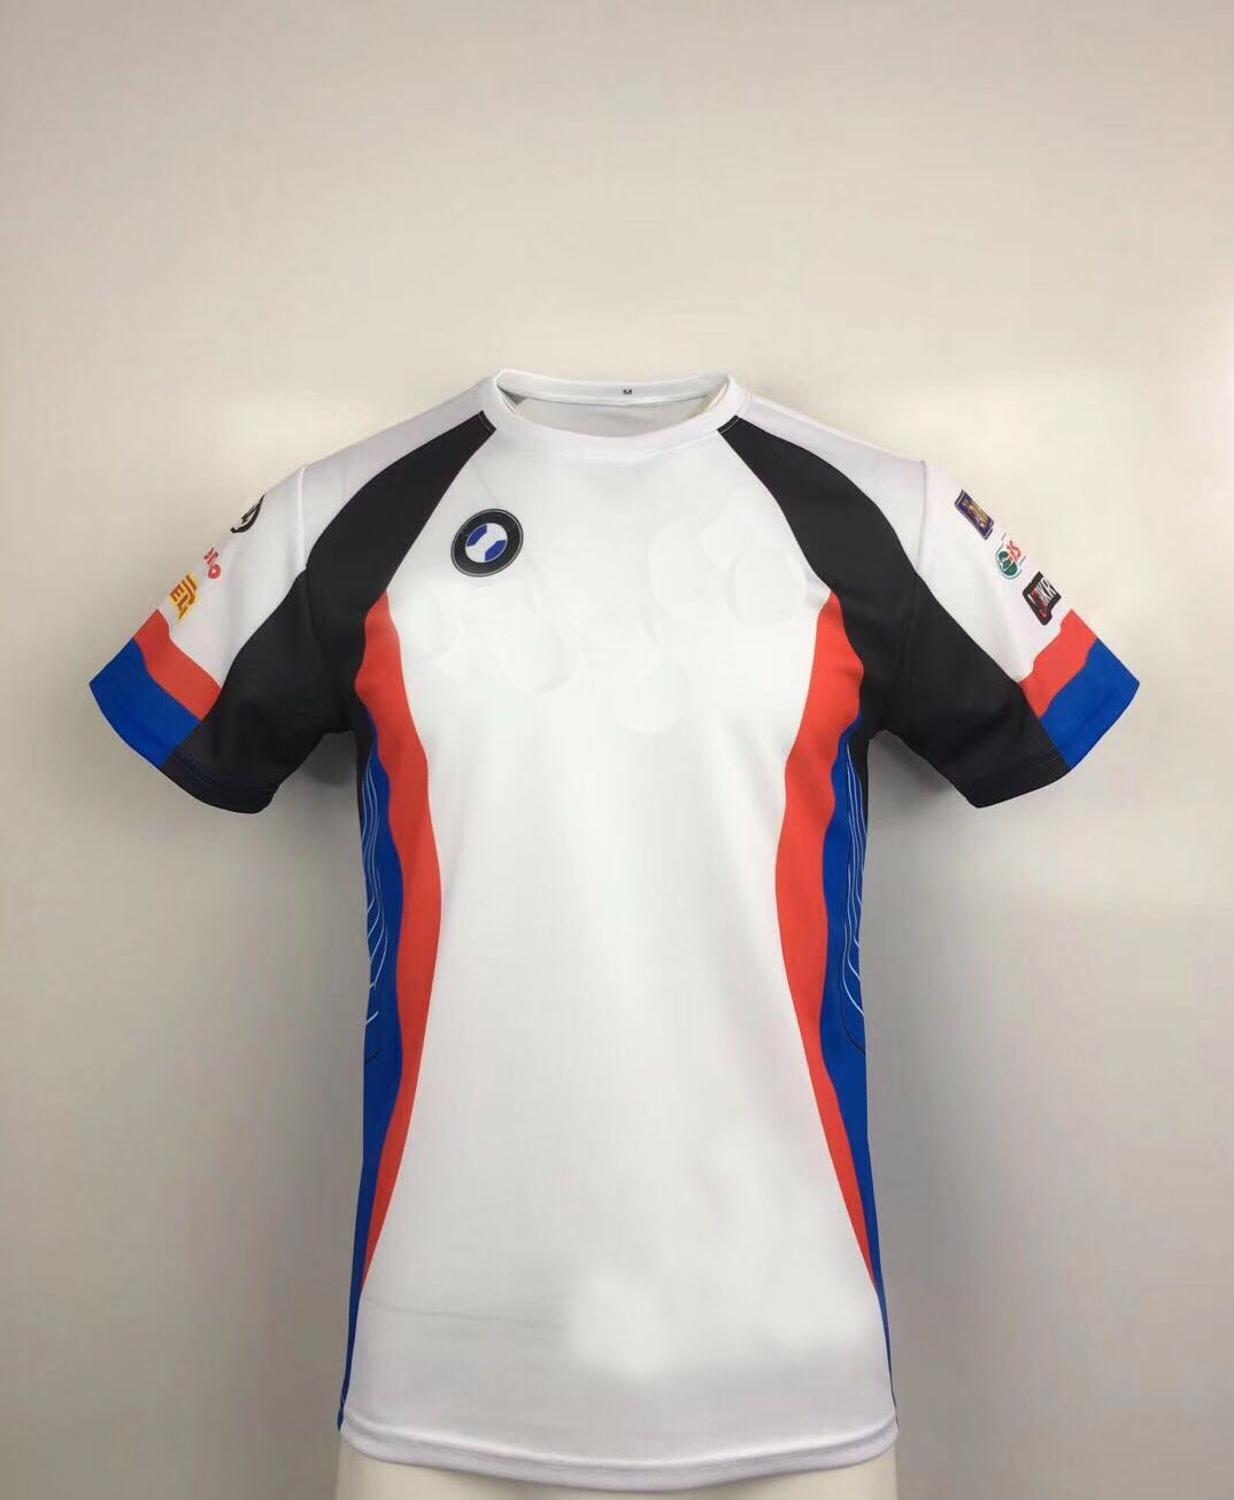 NEW 2020 White <font><b>Motorrad</b></font> Motorsport Motorcycle <font><b>T</b></font>-<font><b>shirt</b></font> Cycling Outdoor Polyester Quick-Drying <font><b>T</b></font>-<font><b>shirt</b></font> Jersey for <font><b>BMW</b></font> Motocross image